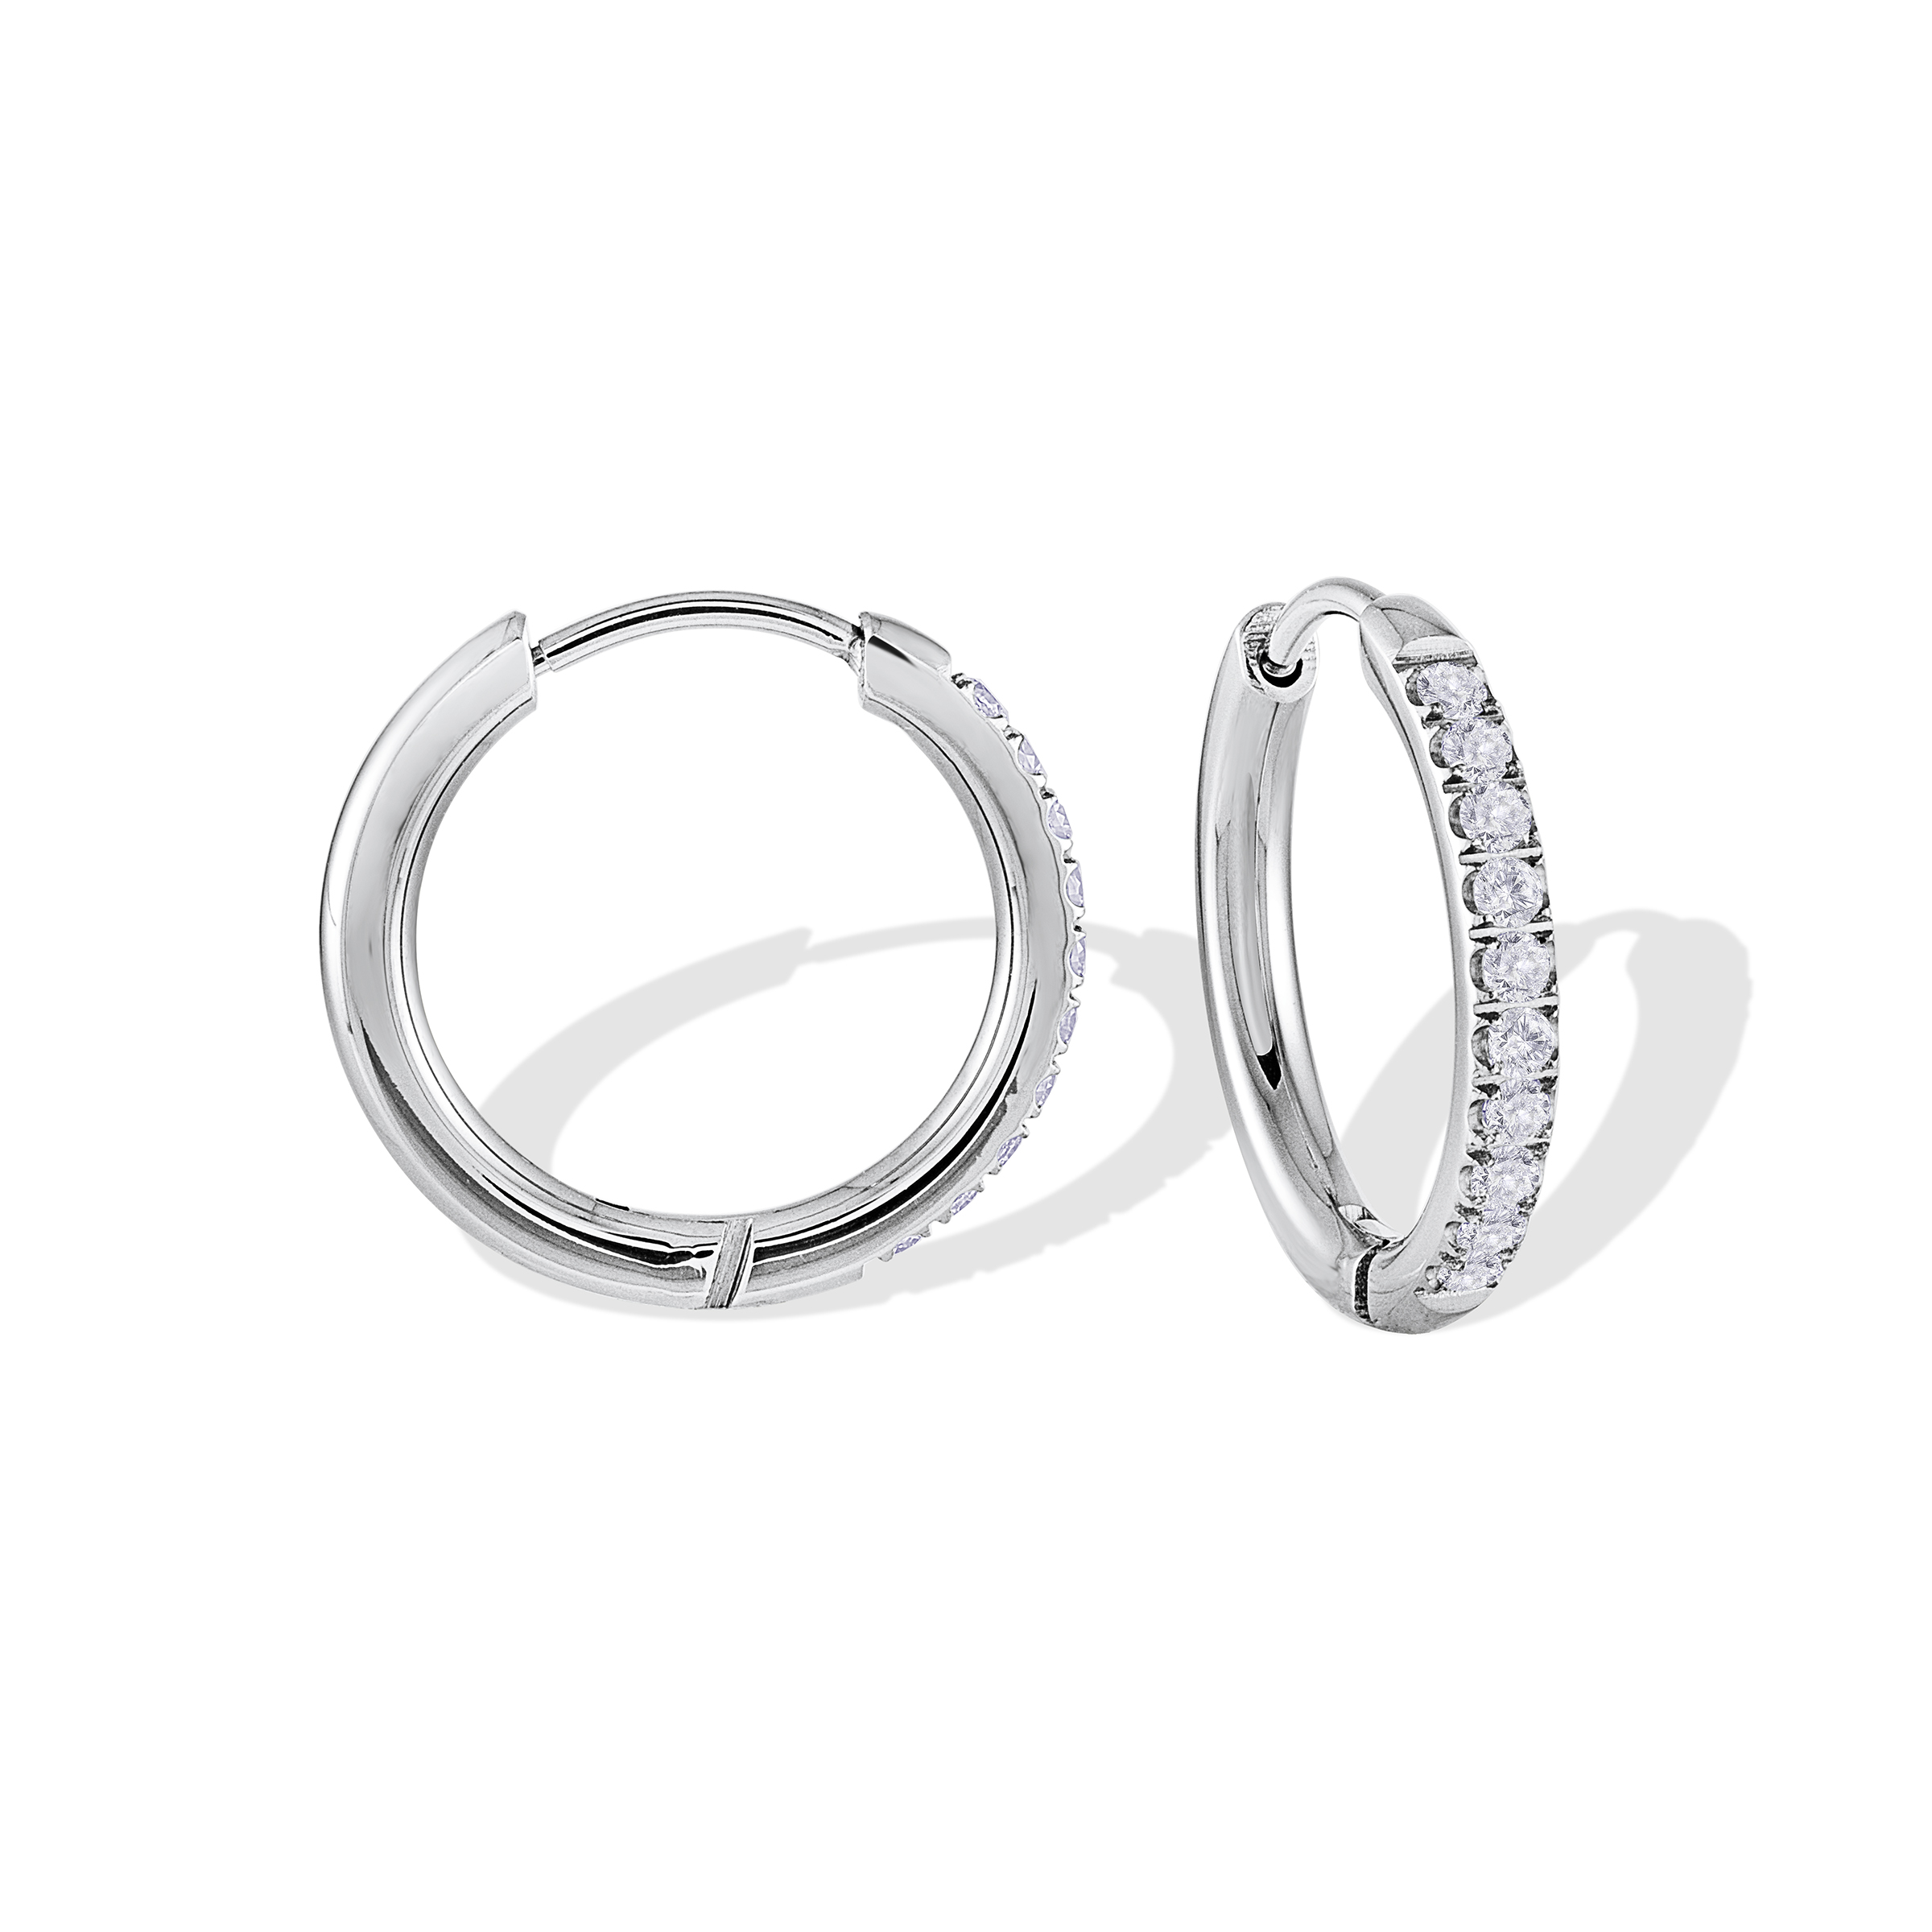 Hoop earrings - Stainless steel & cubic zirconia